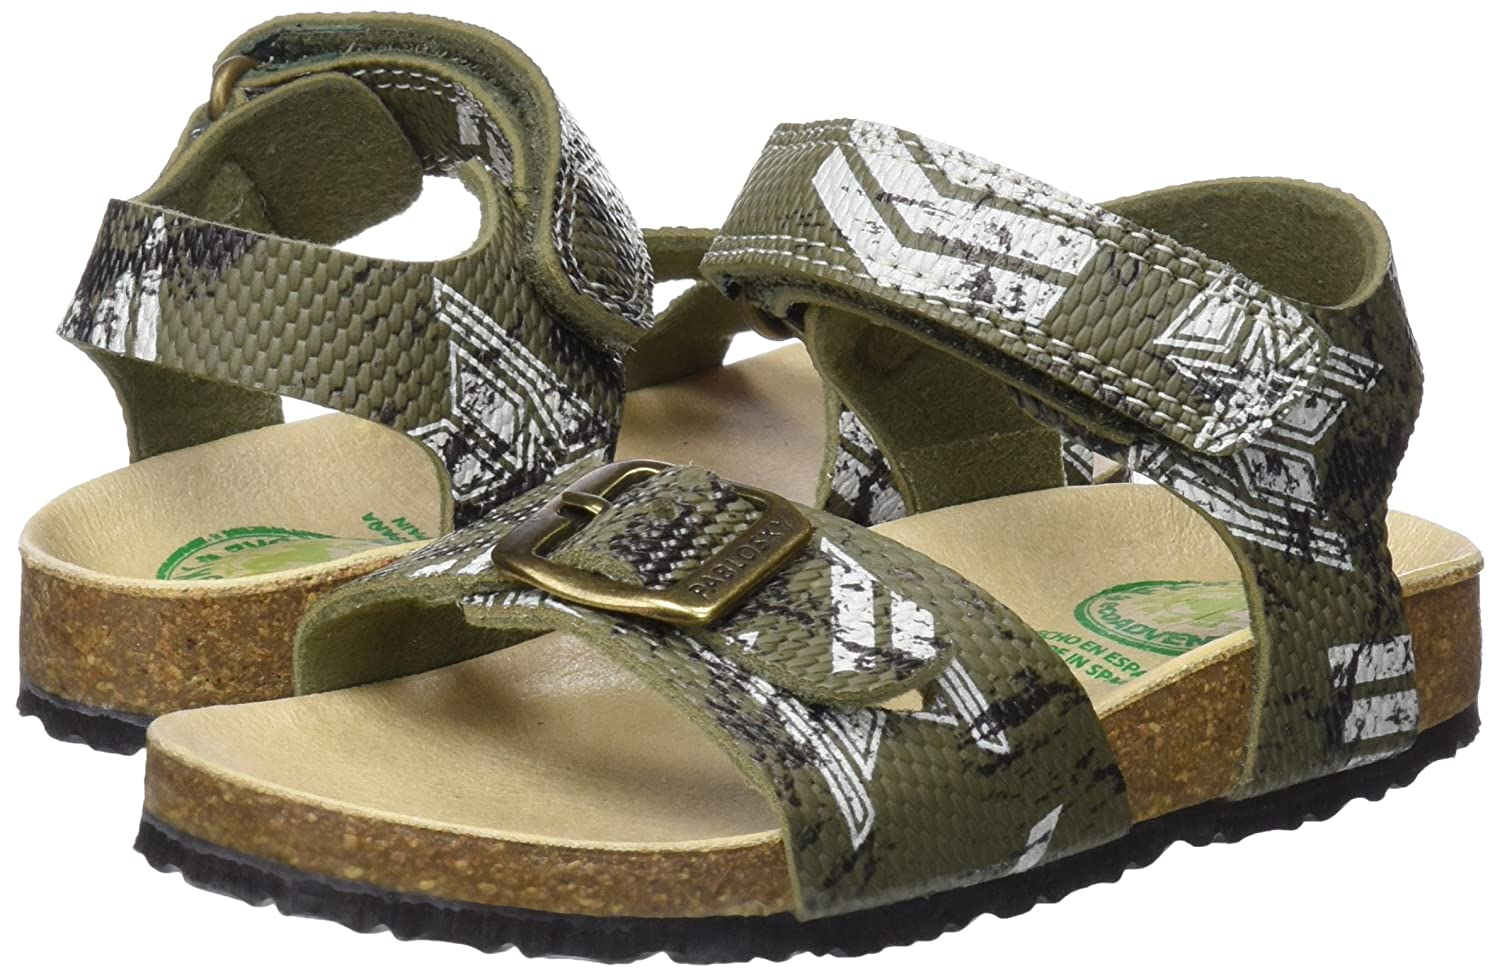 Green Pablosky Boys/' 584580 Open Toe Sandals Verde 584580 11.5 UK